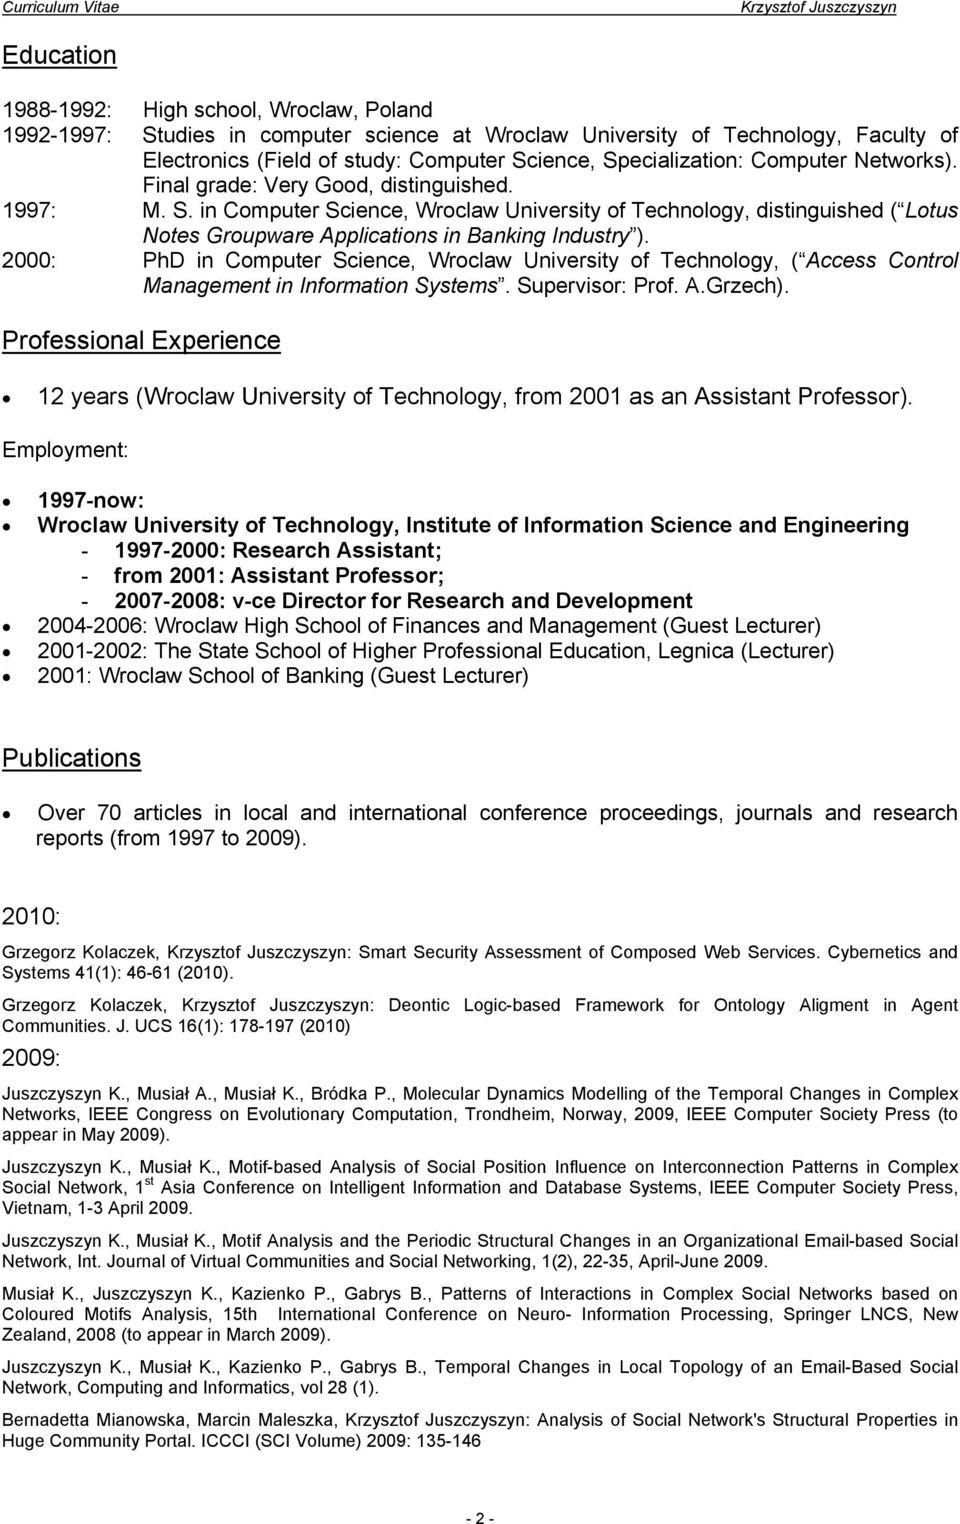 2000: PhD in Computer Science, Wroclaw University of Technology, ( Access Control Management in Information Systems. Supervisor: Prof. A.Grzech).